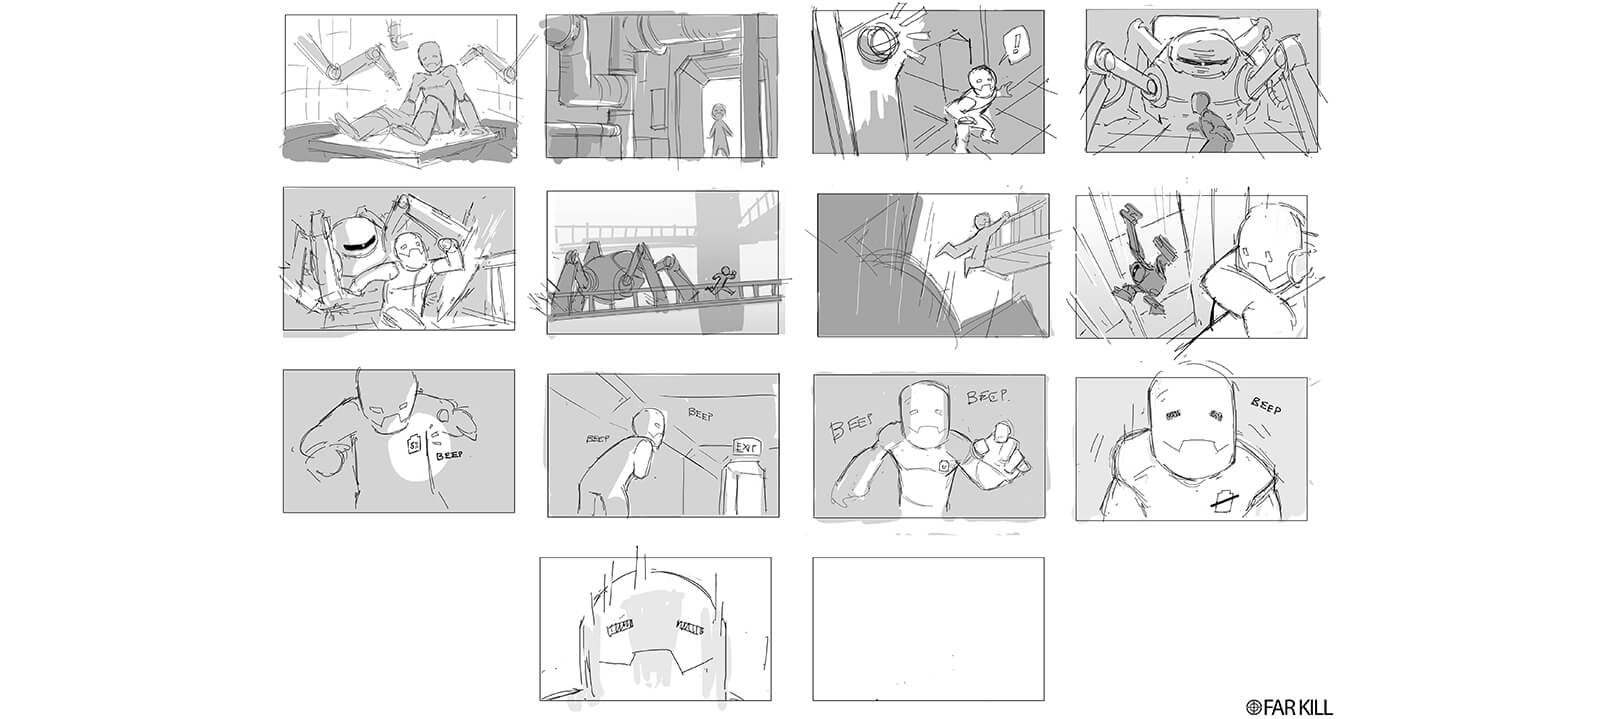 Storyboard sketches of the film Powerless by Far Kill.